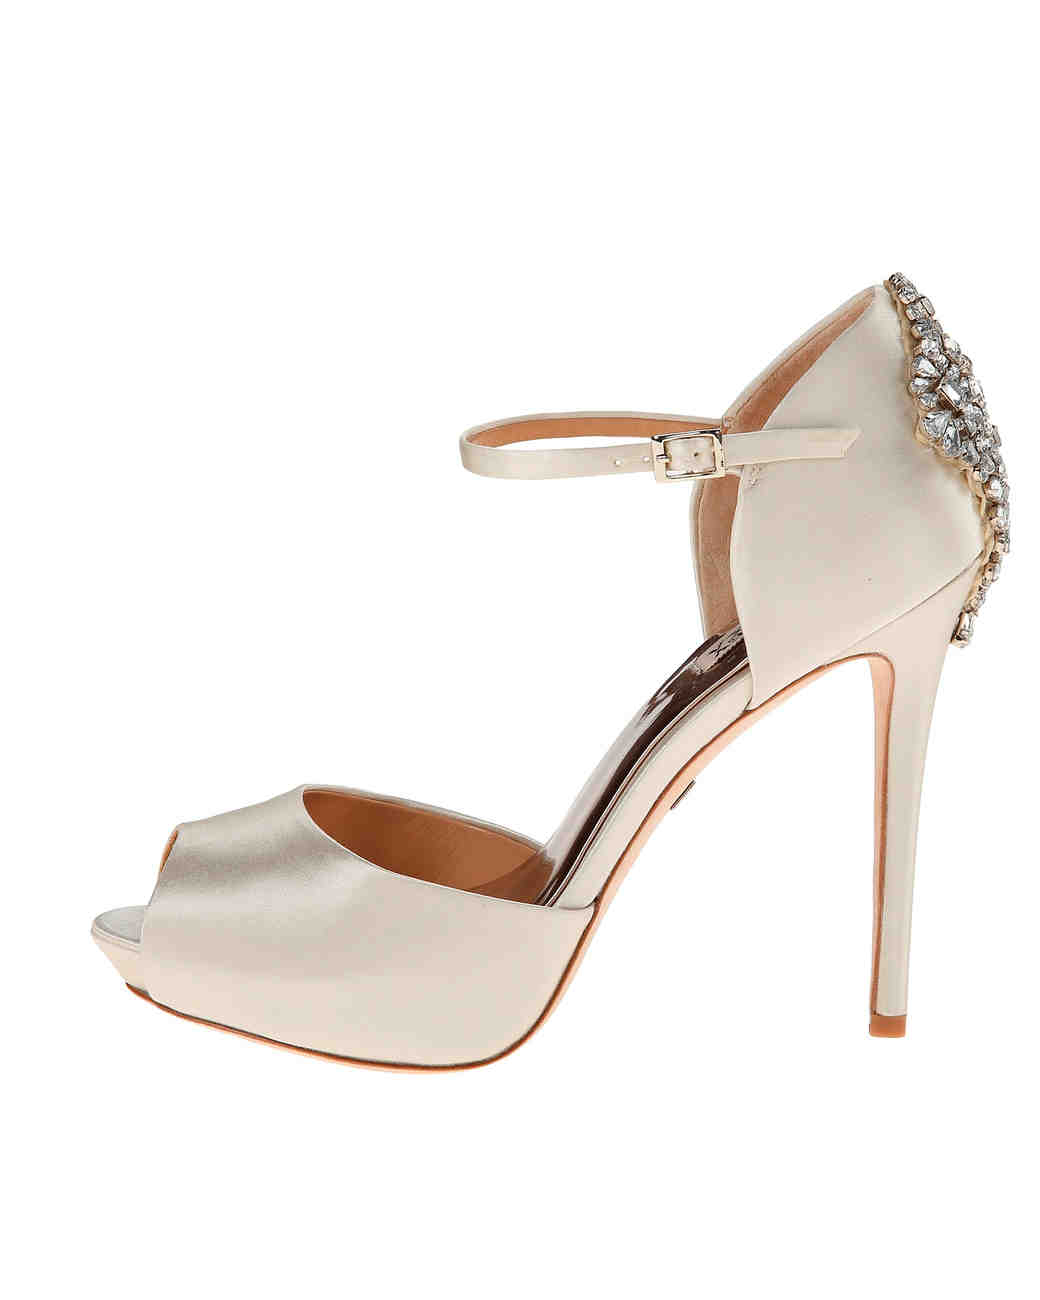 Bridal Shoes Saks: 50 Best Shoes For A Bride To Wear To A Summer Wedding